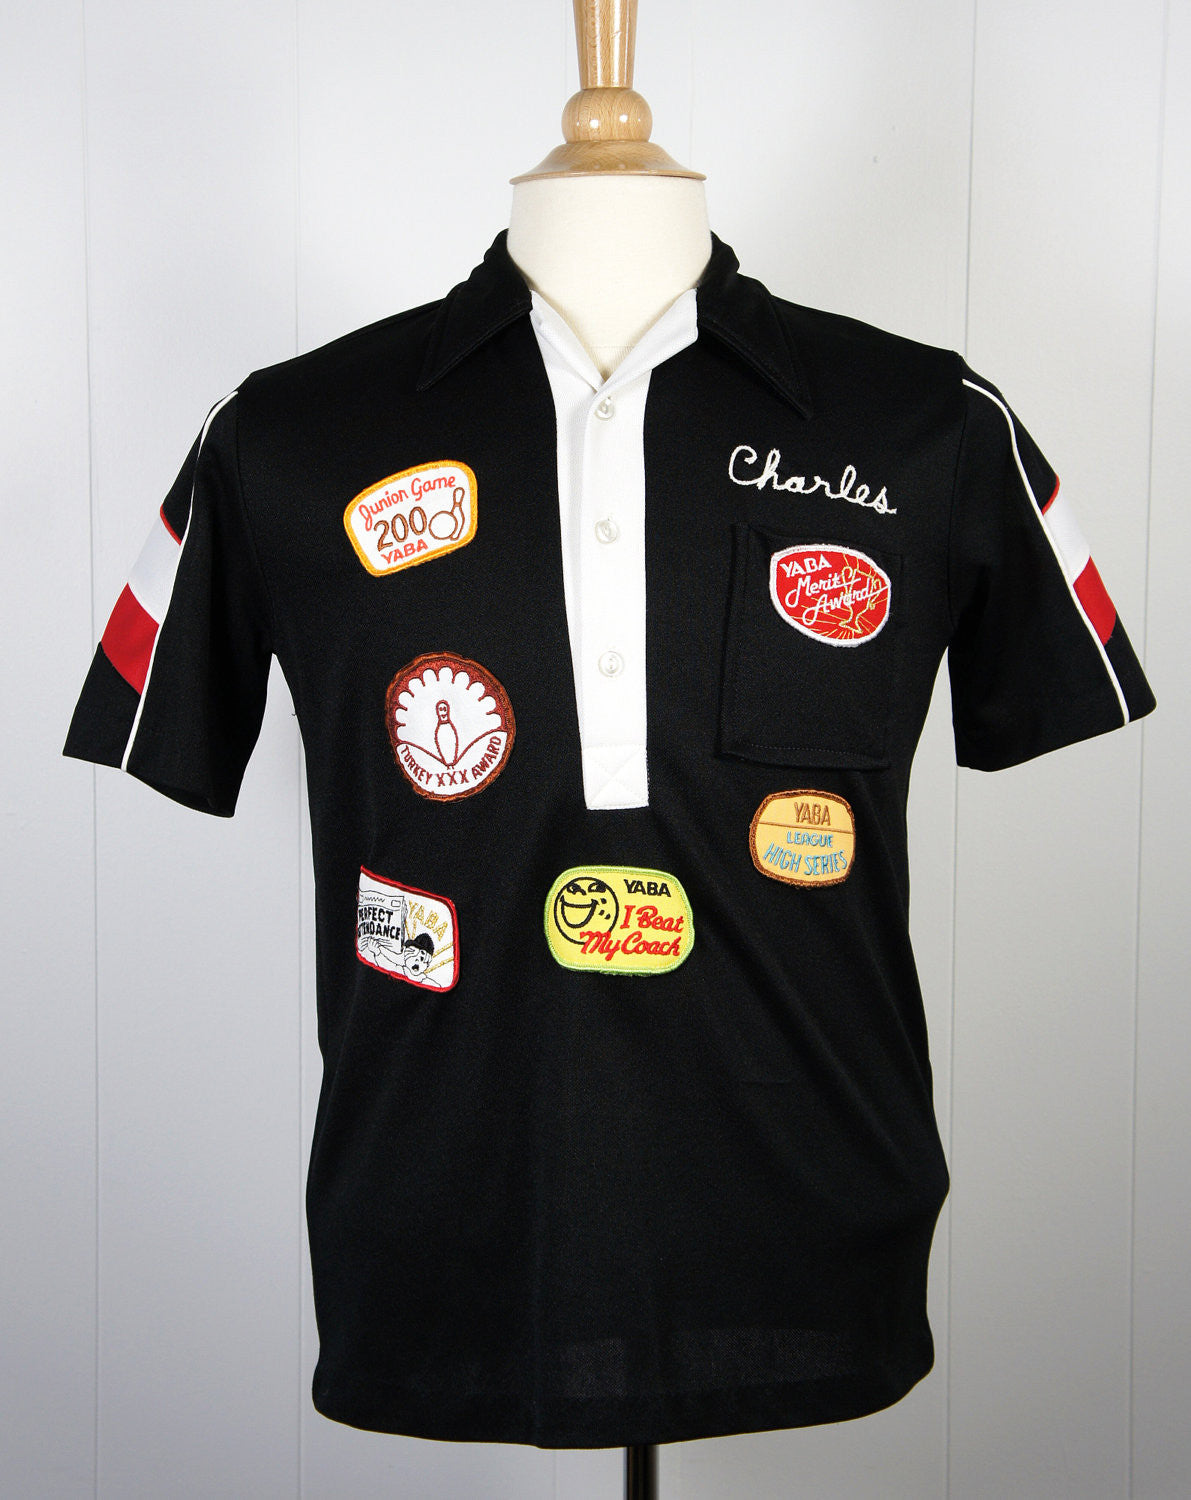 1980's Bowling Shirt w/ Patches - Charles, Size S